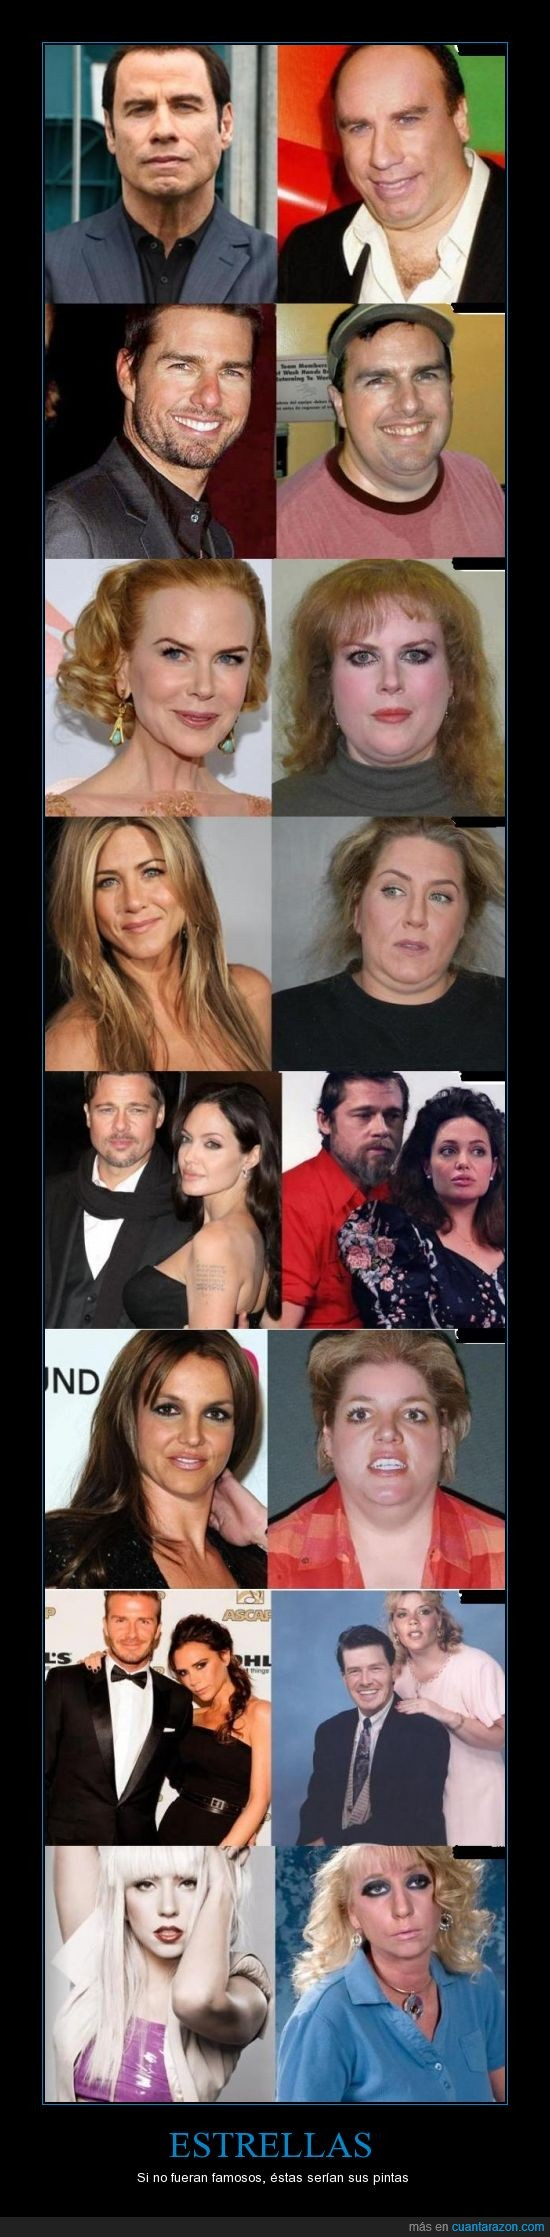 Brangelina,Britney Spears,David y Victoria Beckham,Jennifer Aniston,John Travolta.,Lady Gaga,Nicole Kidman,tom cruise